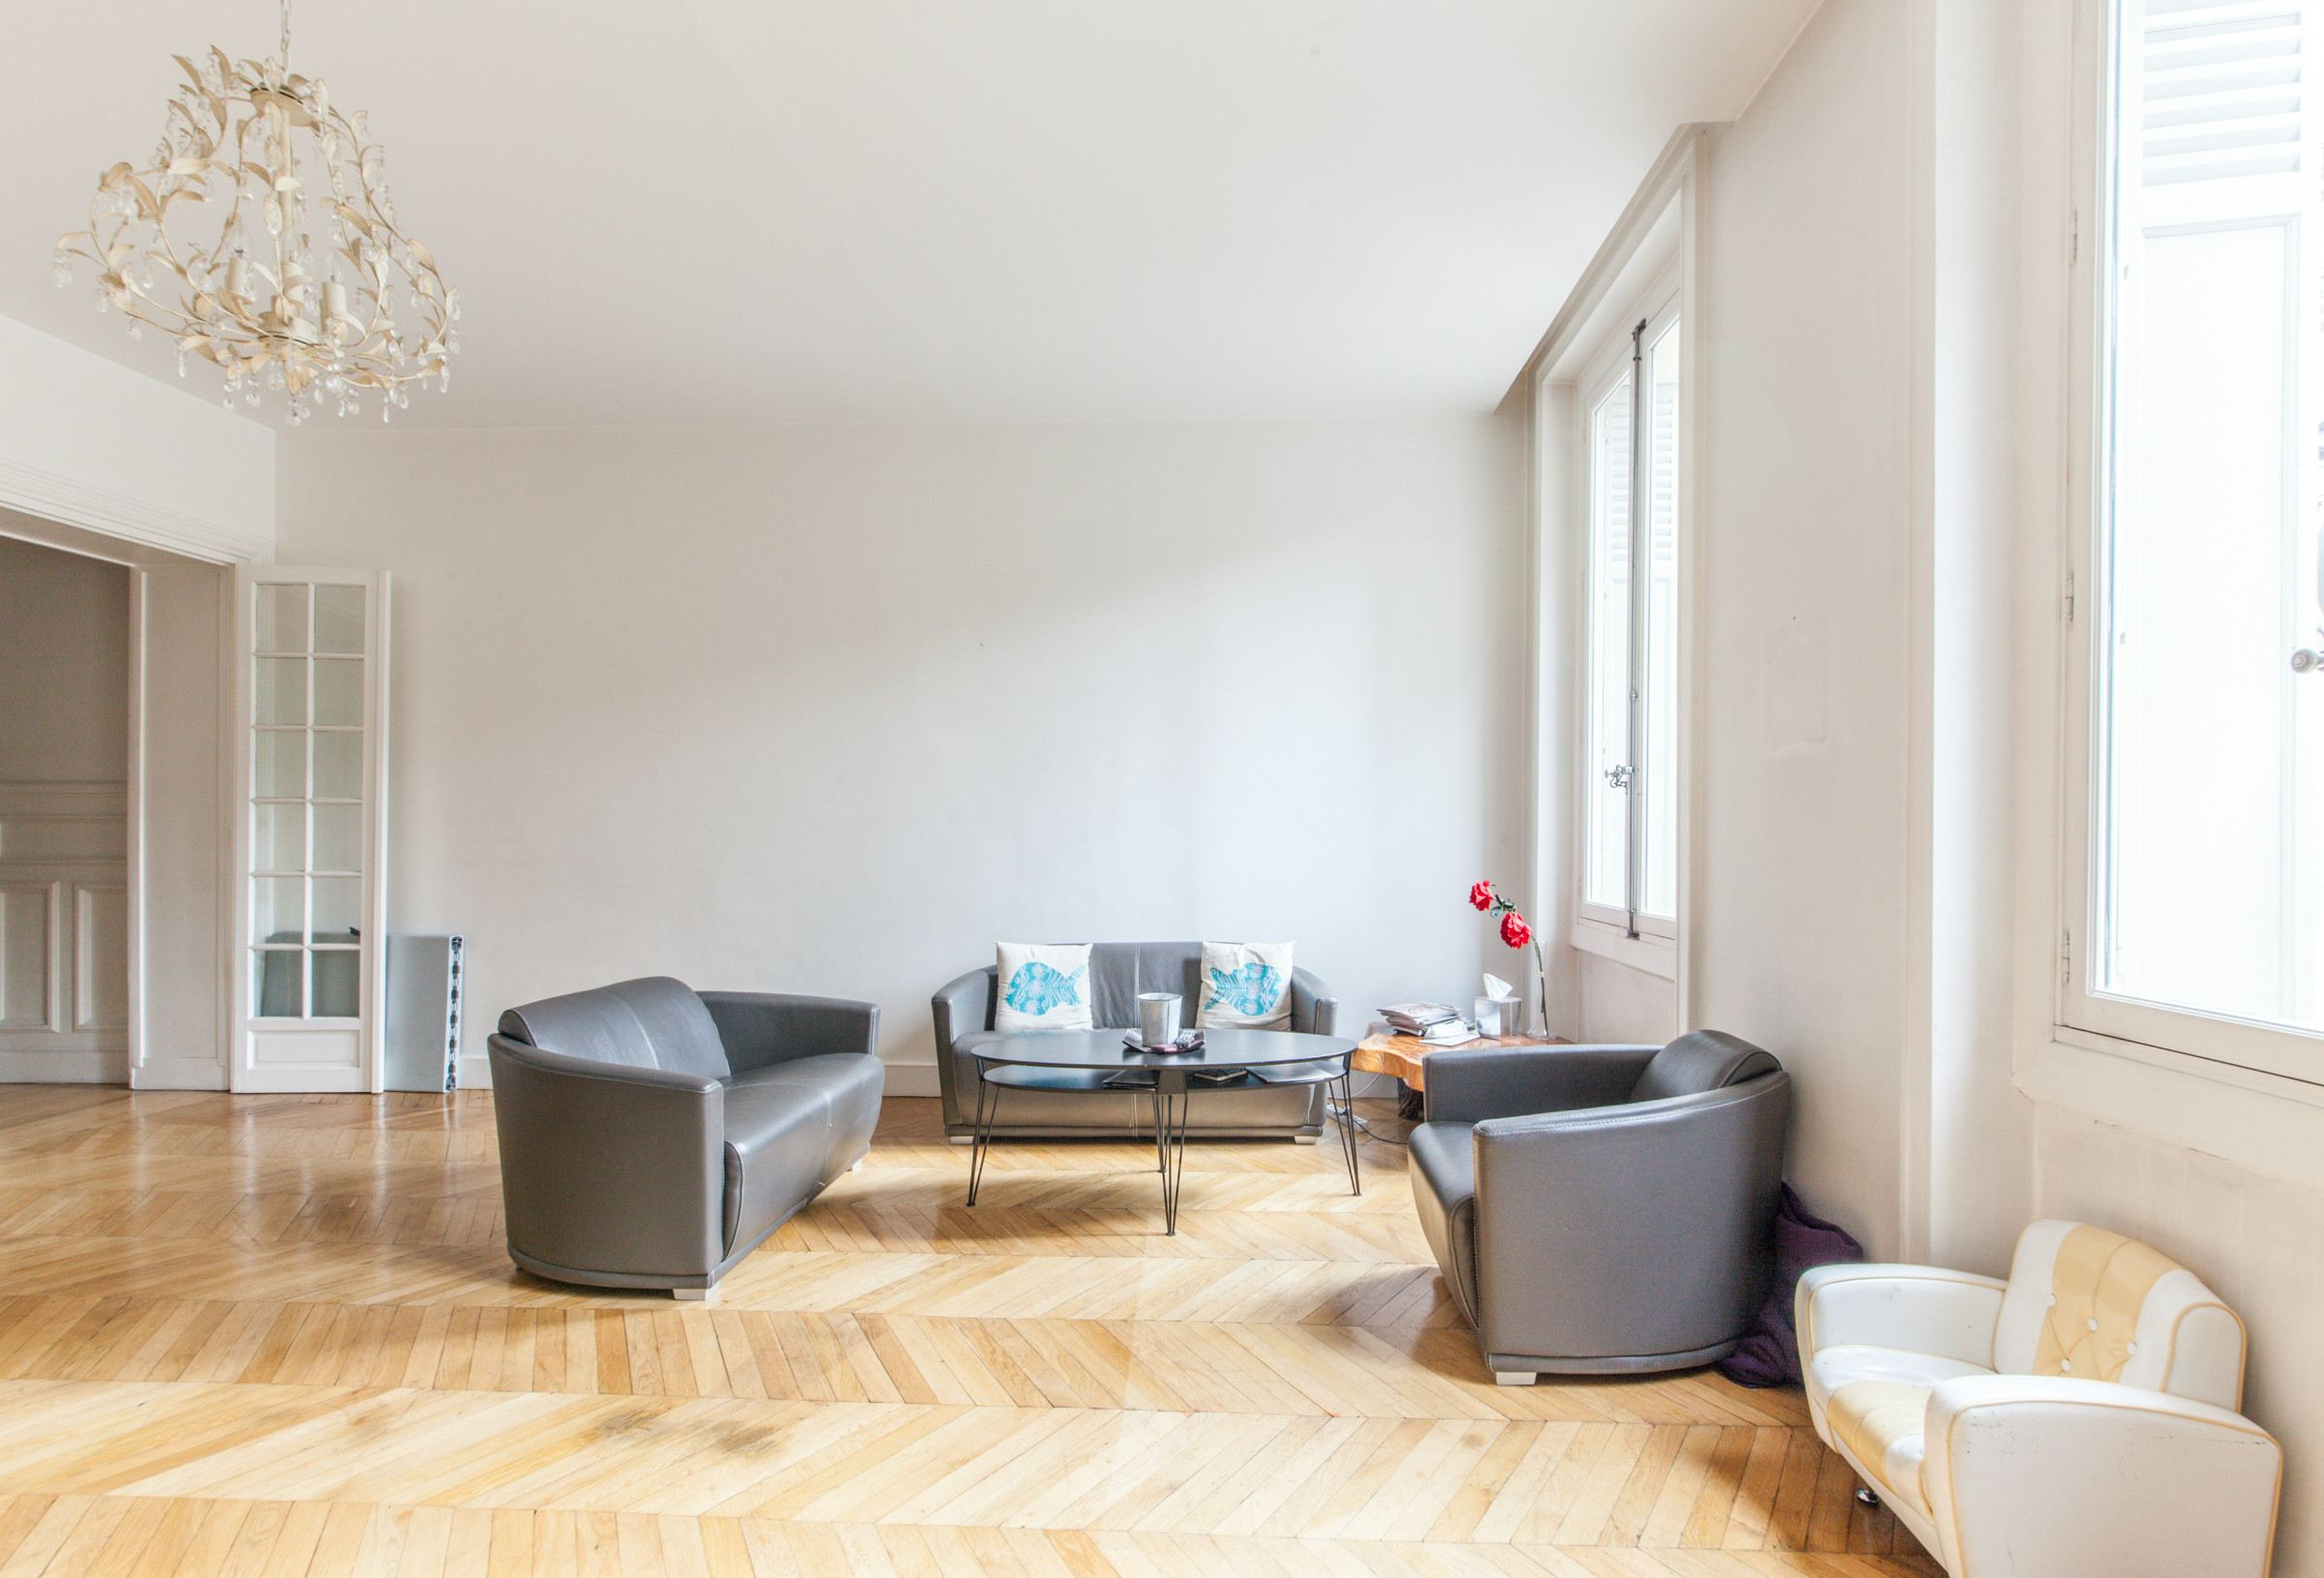 sales property at Paris 16 - Foch. Apartment. Unoverlooked